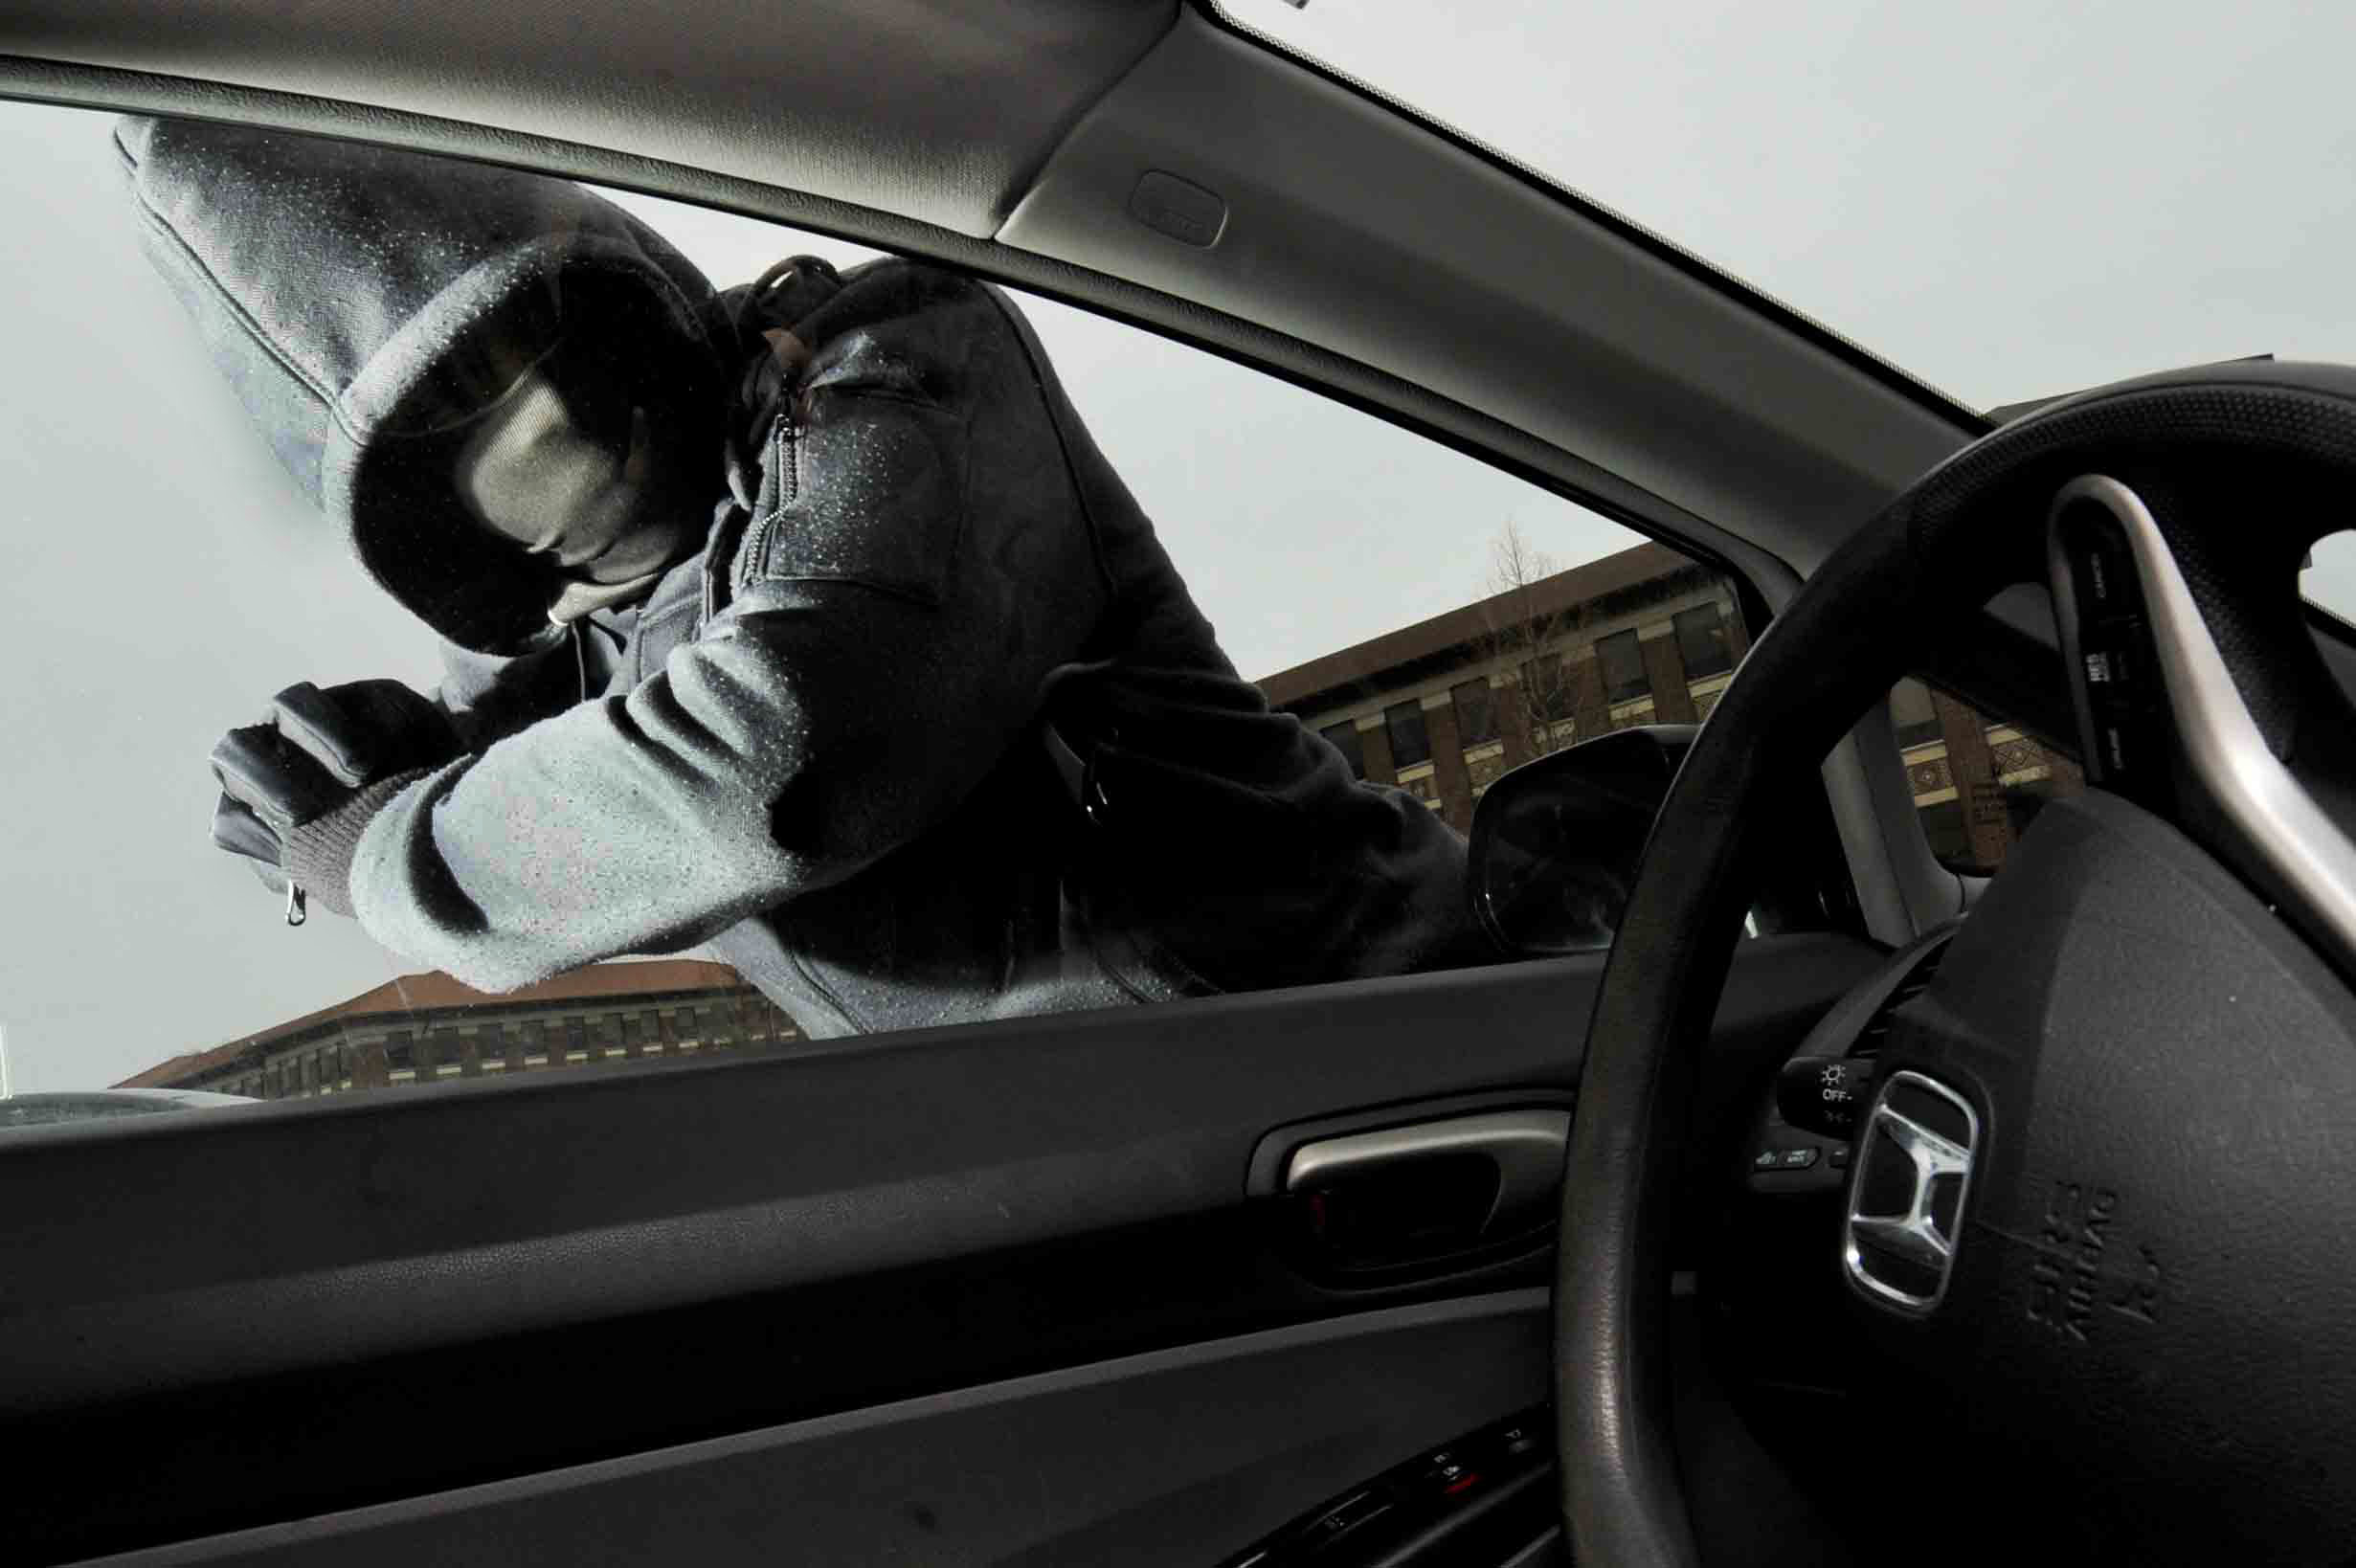 car theft prevention guide